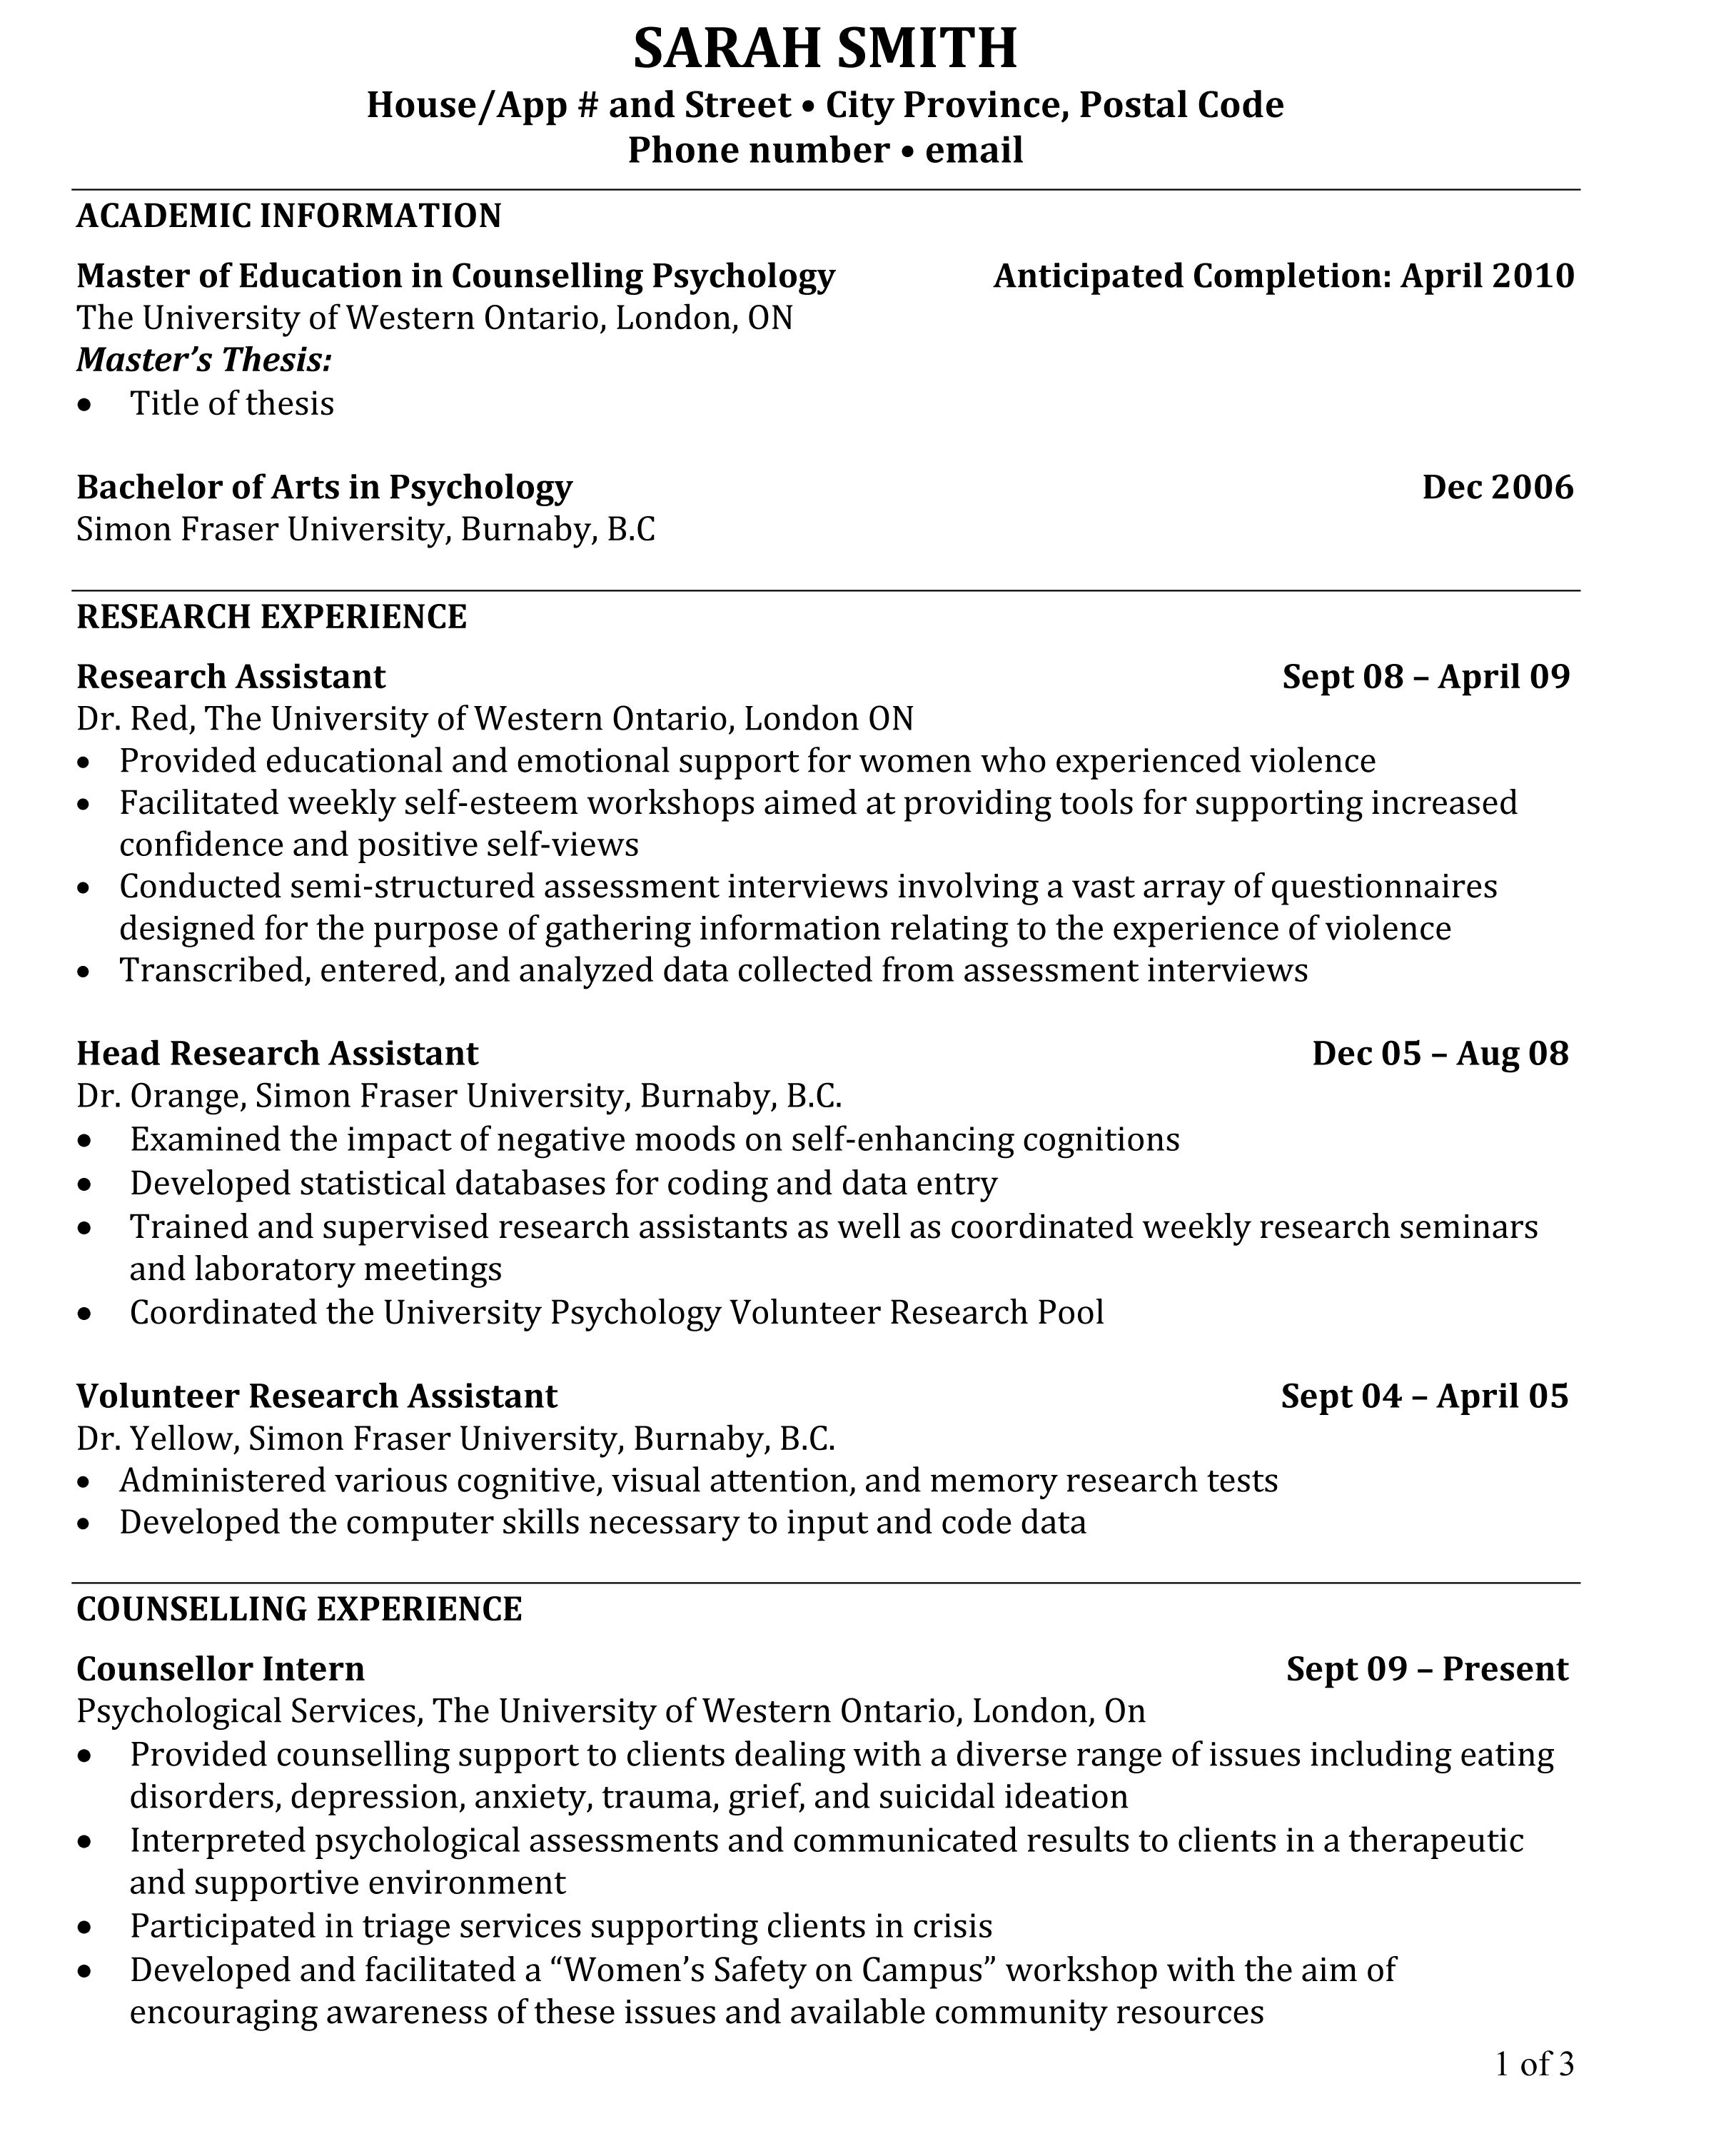 Pin By Sarah K On Grad School Pinterest Resume Sample Resume